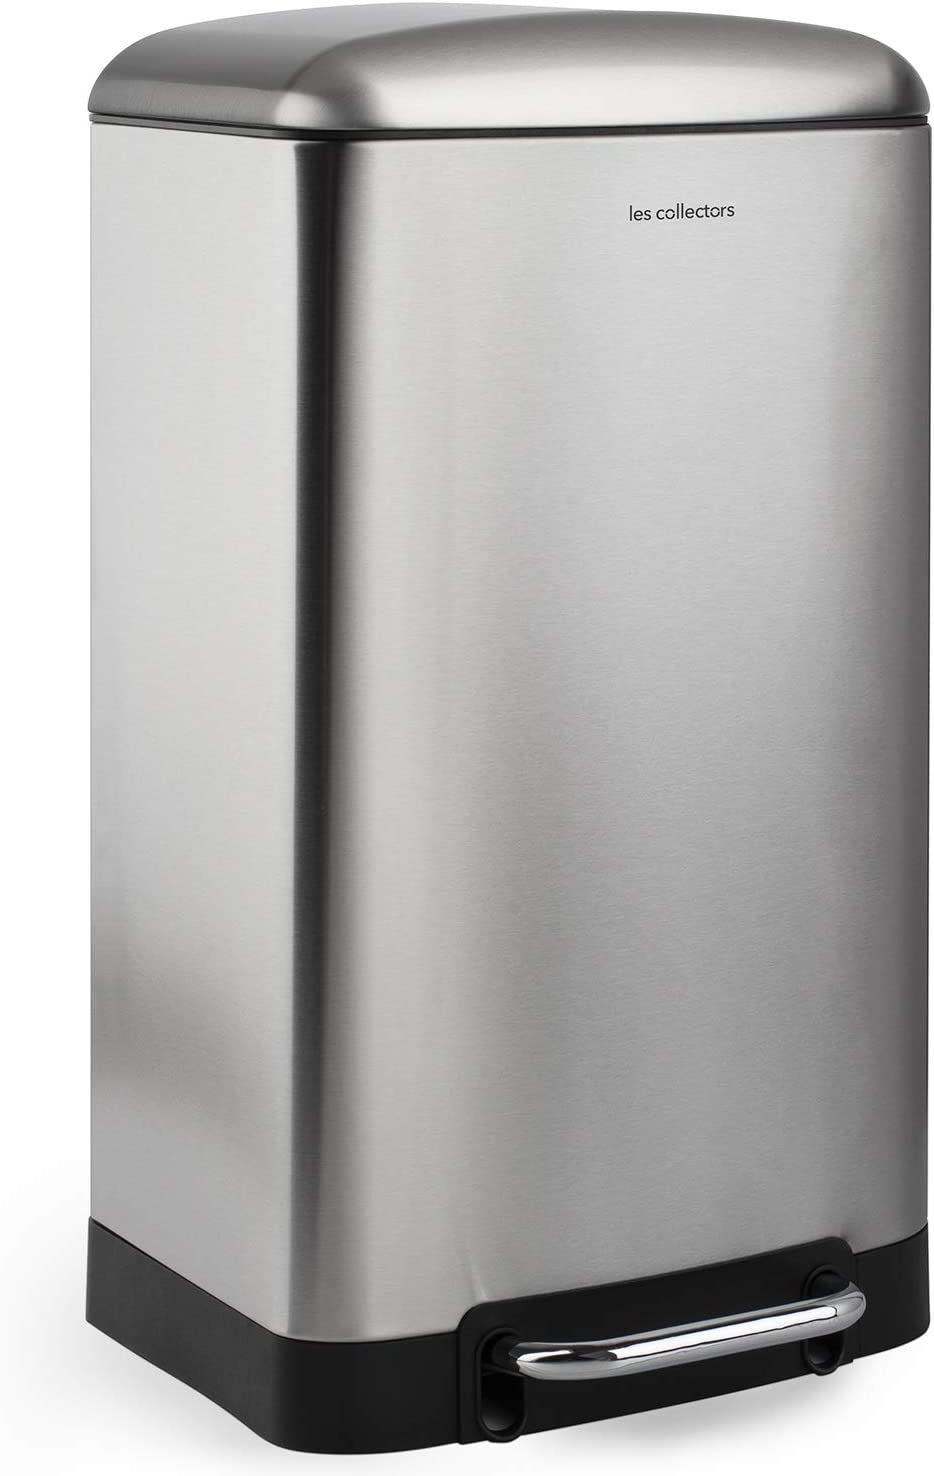 silver 40 L Large Capacity 40 L Metal Stainless Steel Les Collectors Kitchen Pedal Bin